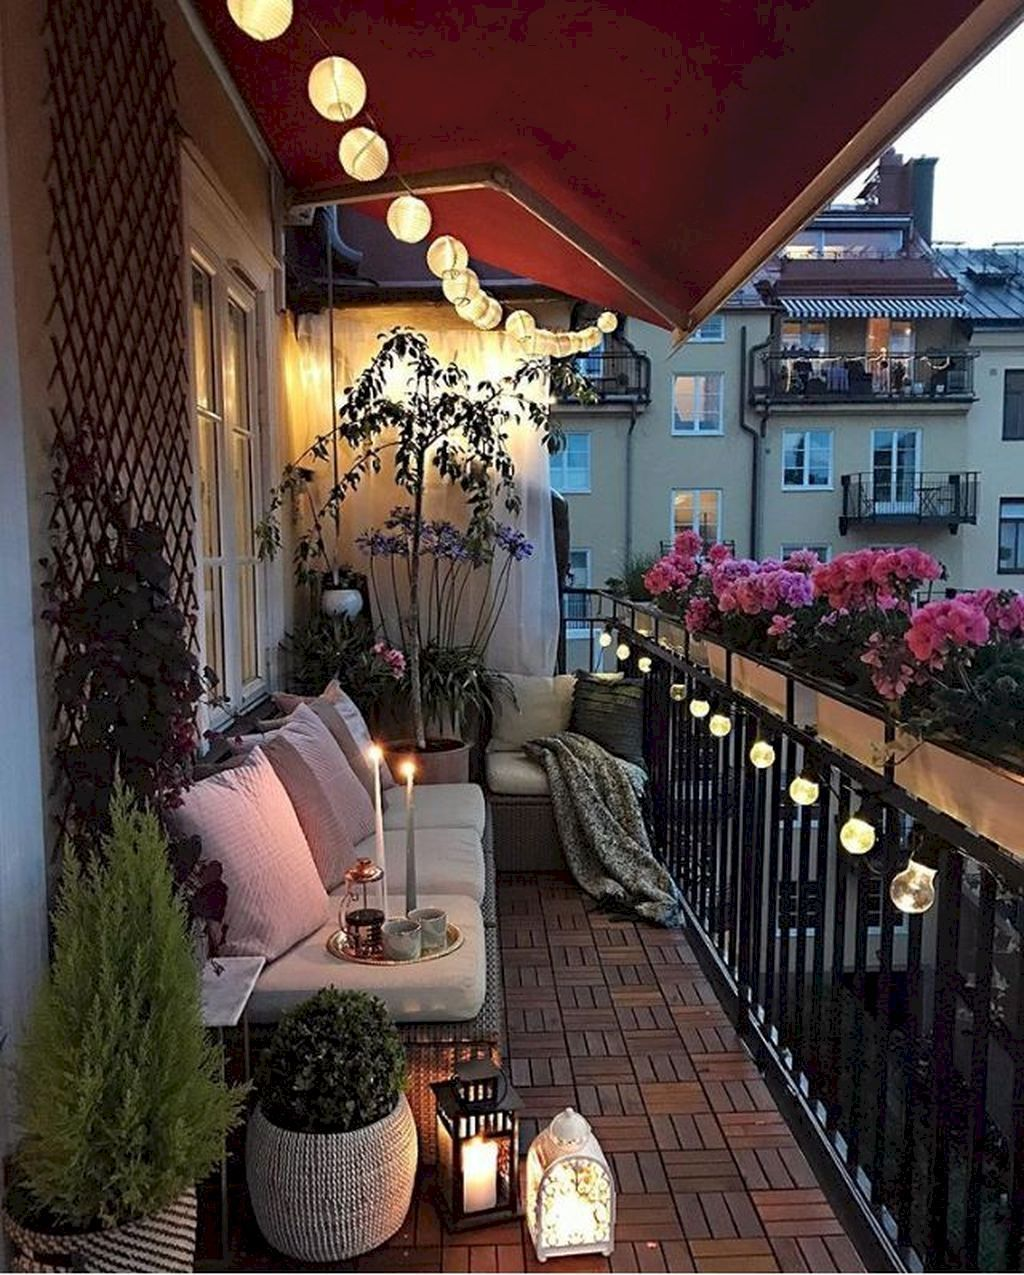 09 Cozy Apartment Balcony Decorating Ideas on A Budget Balcony